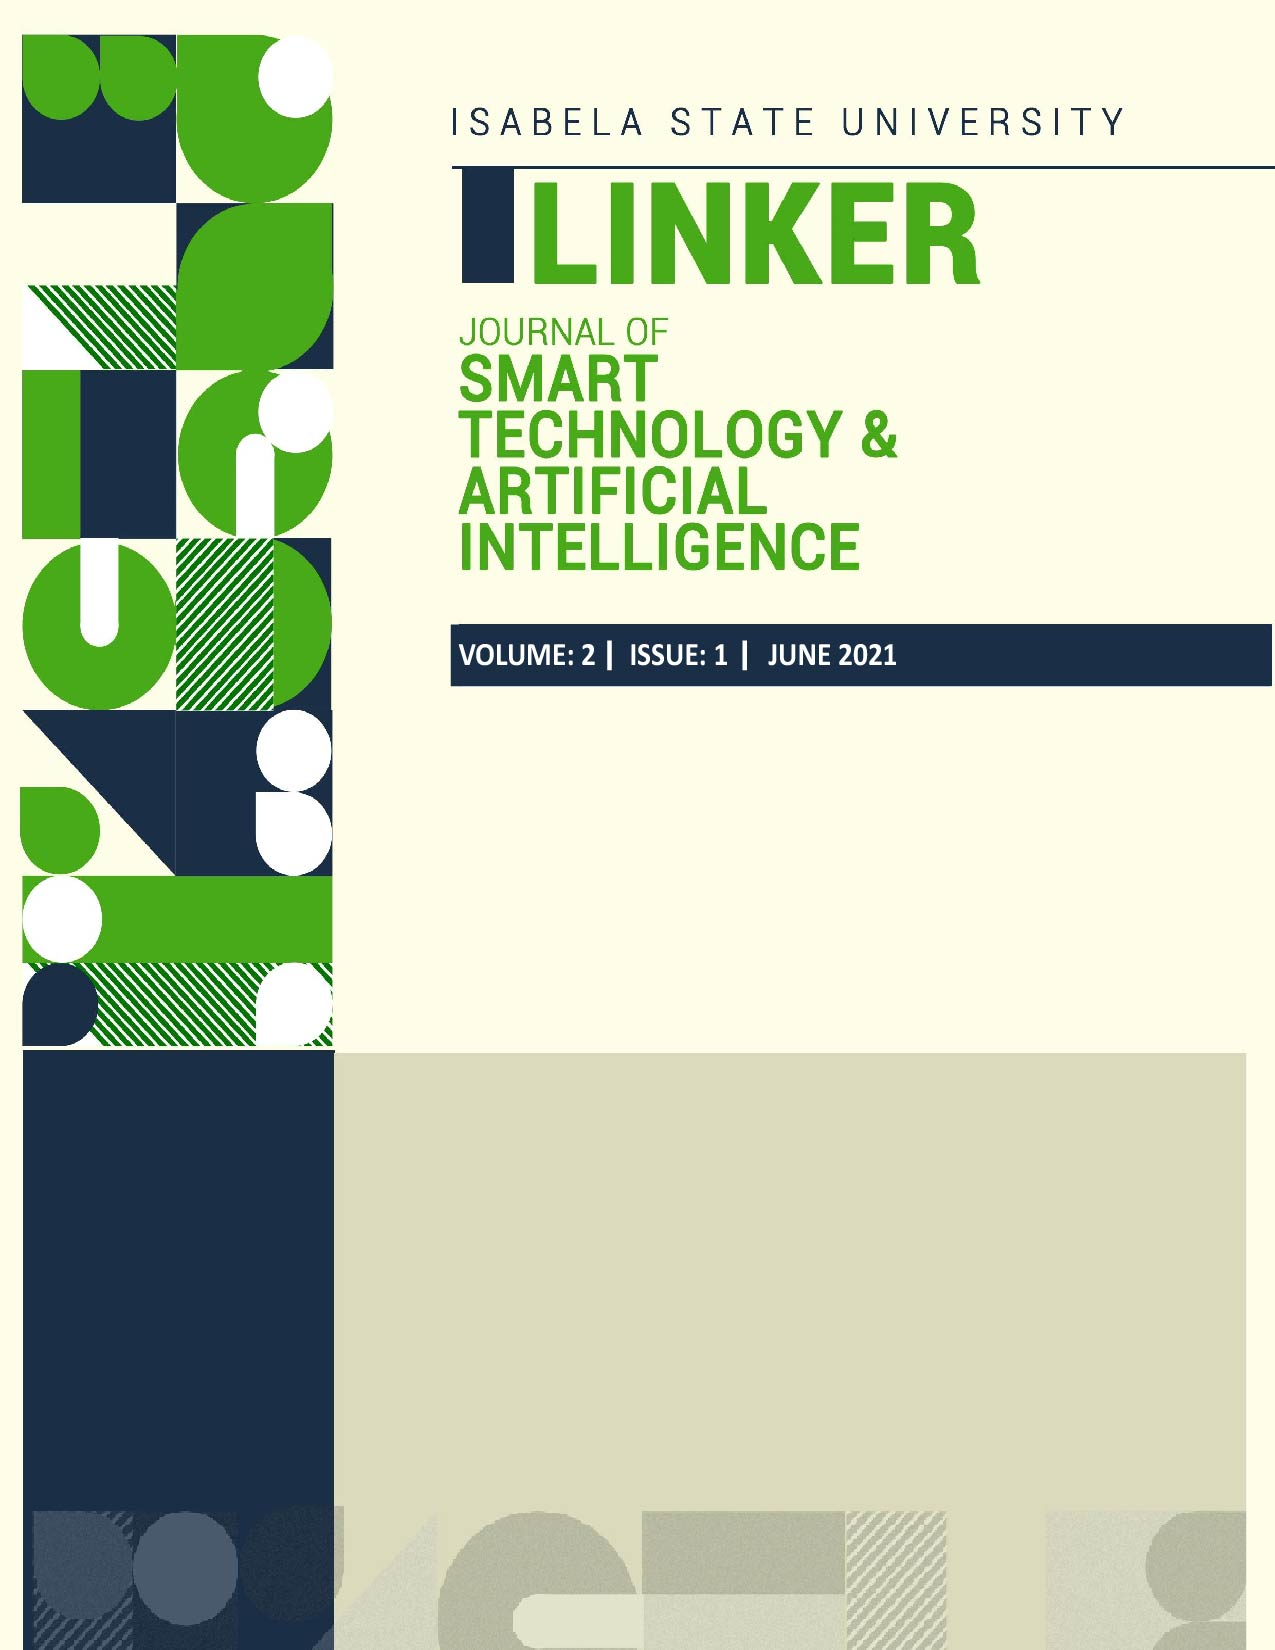 View Vol. 2 No. 1 (2021): The Journal of Smart Technology and Artificial Intelligence